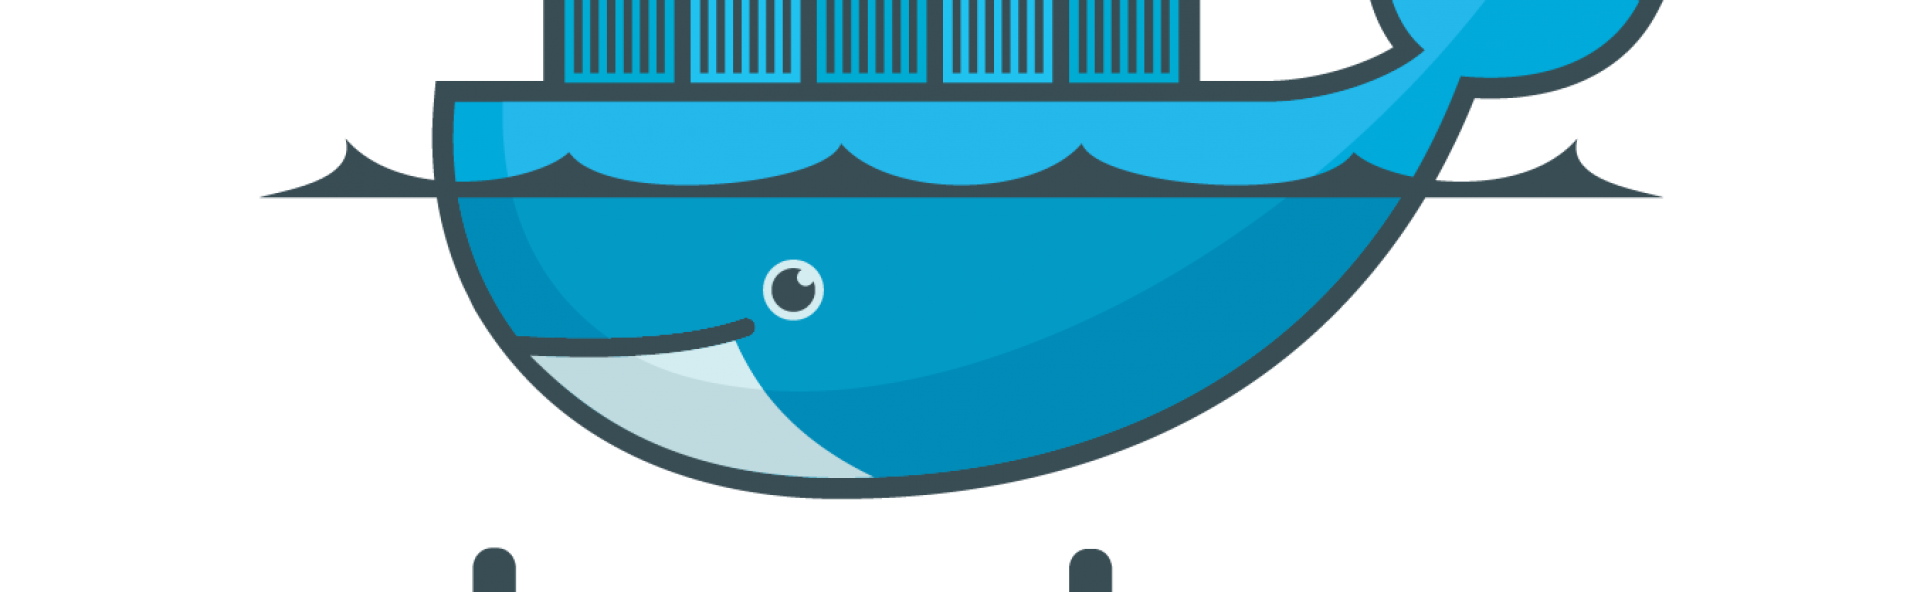 Start your adventure with Docker.